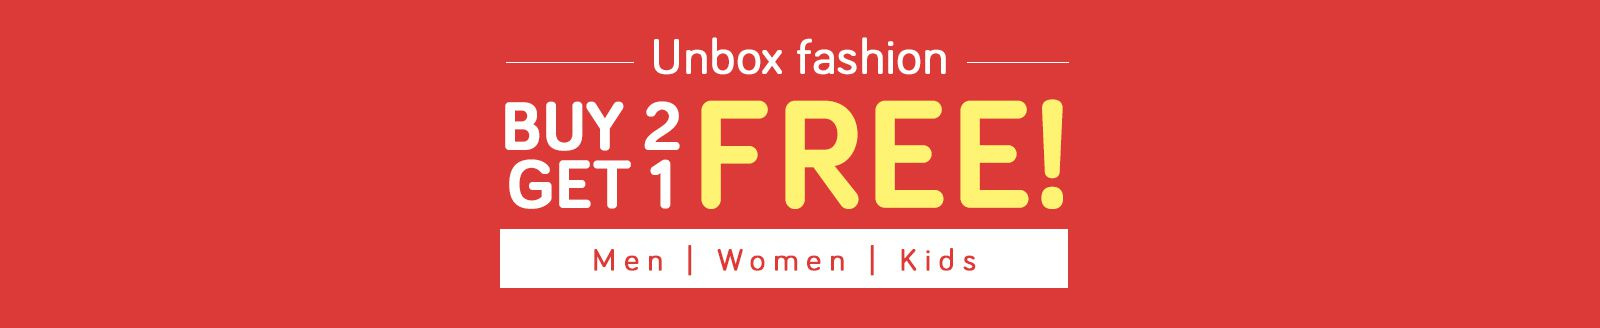 Buy 2 Get 1 FREE | Online Shopping for Mens Clothing: Mens T-Shirts & Polos / Mens Shirts / Mens Jeans | Online Shopping for Womens Clothing: Sarees / Silk sarees / Salwar Suits / Lehengas / Biba / Jewellery / Rings / Earrings / Diamond Rings / Loose Diamond